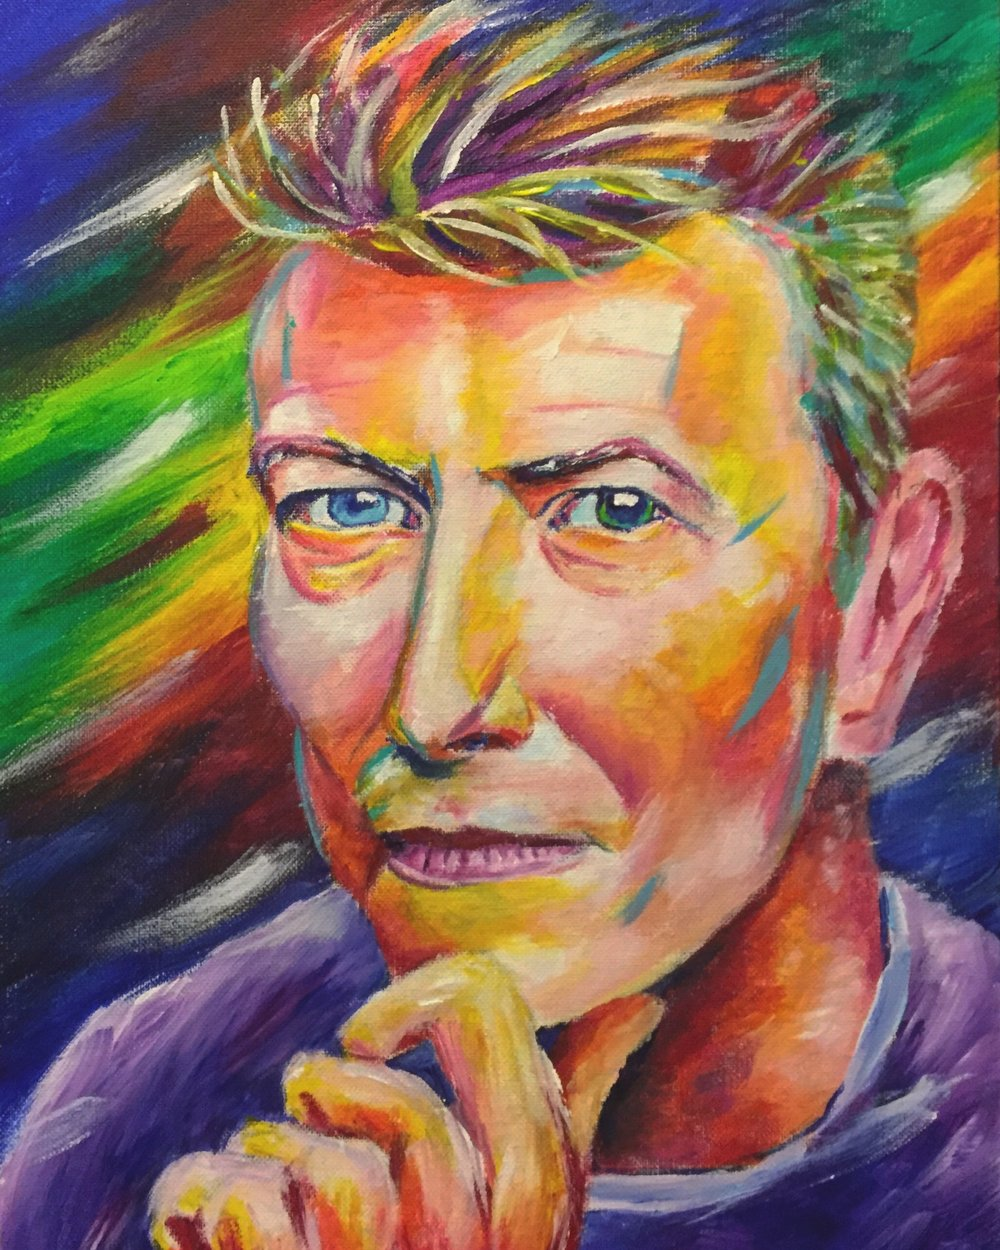 David Bowie - Painting of David Bowie by Taylor Wise